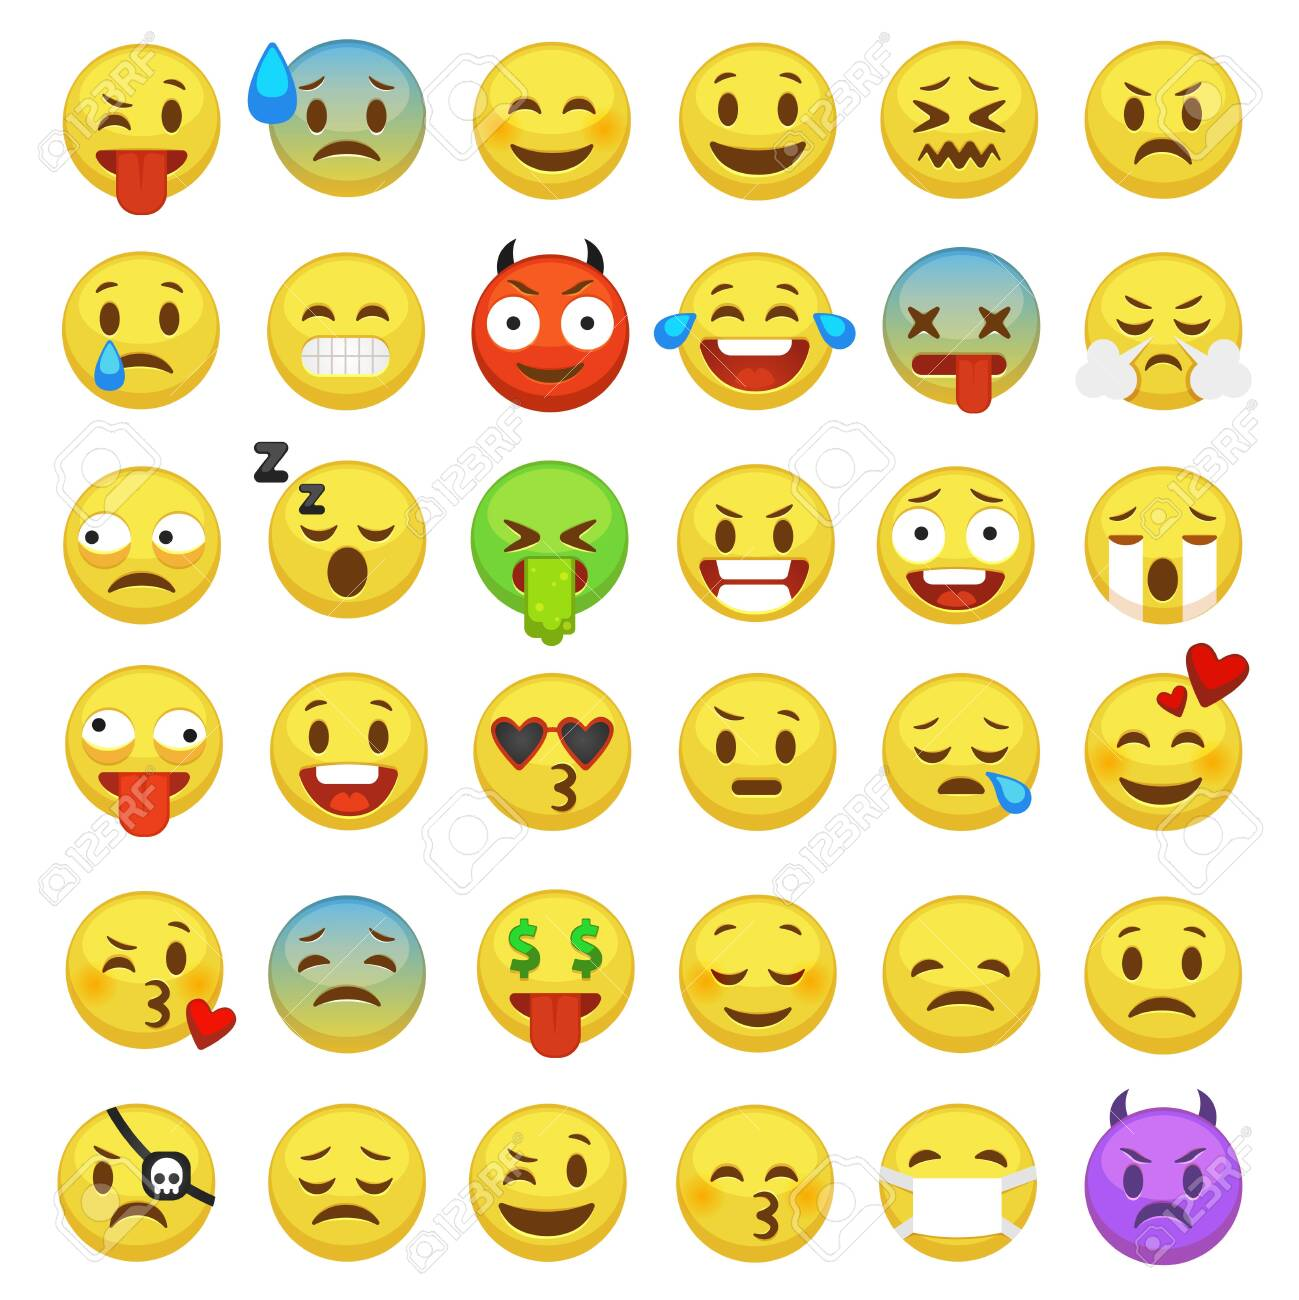 Emojis showing many emotions.